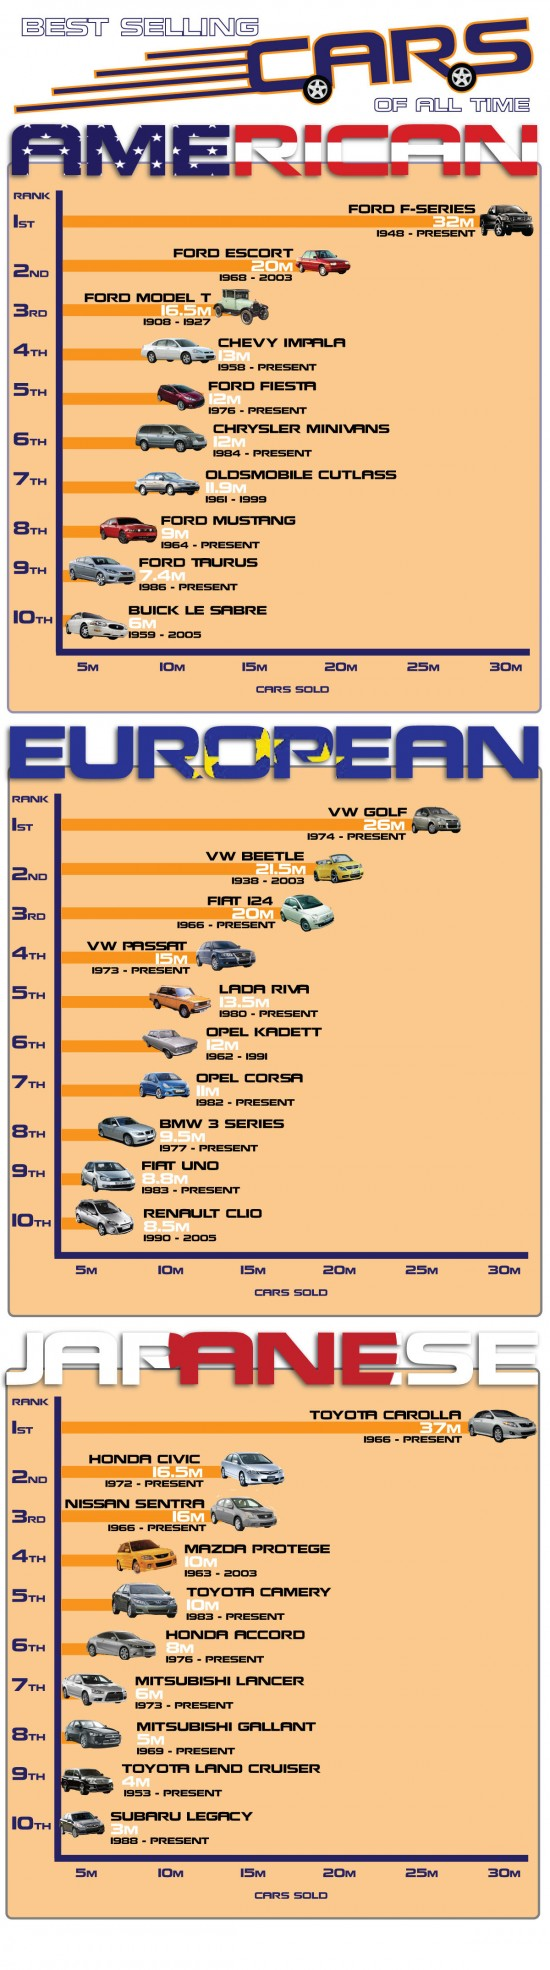 Top Selling Cars Of All Time In America, Europe And Japan